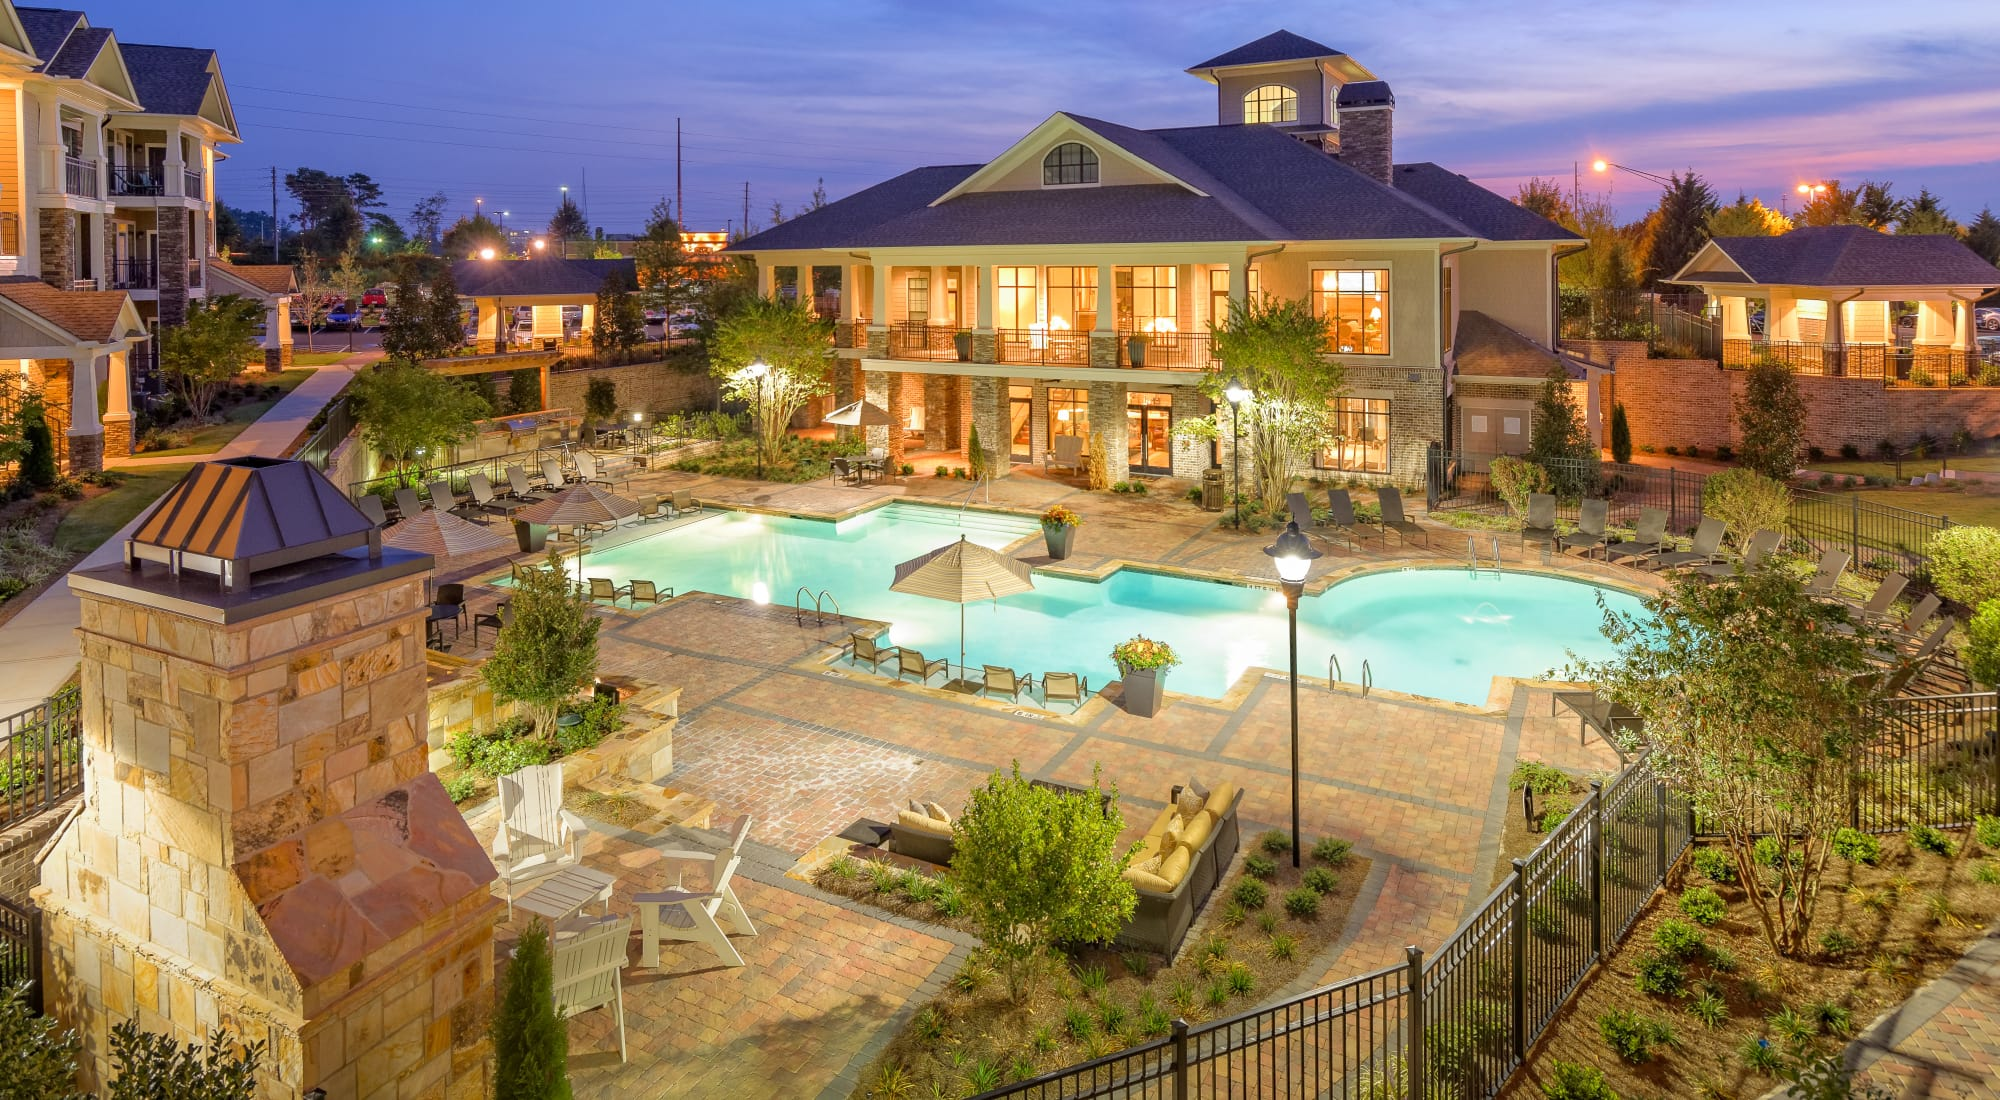 Apartments at Provenza at Old Peachtree in Suwanee, Georgia